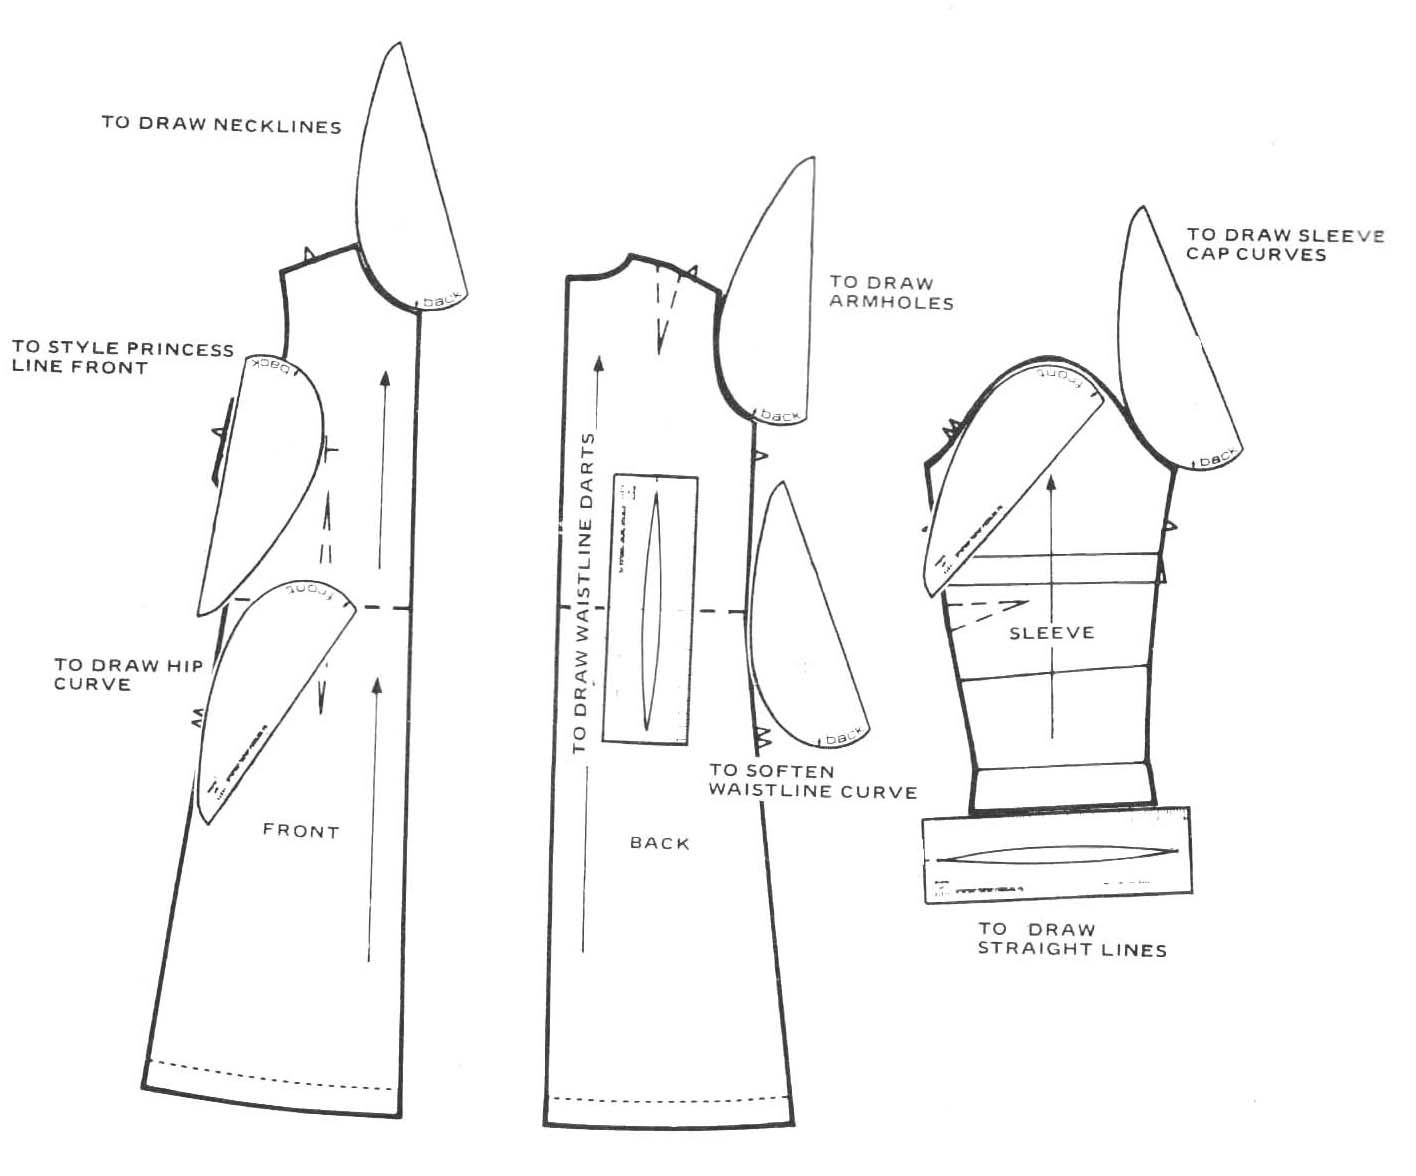 Using French curve tool for armhole, neckline